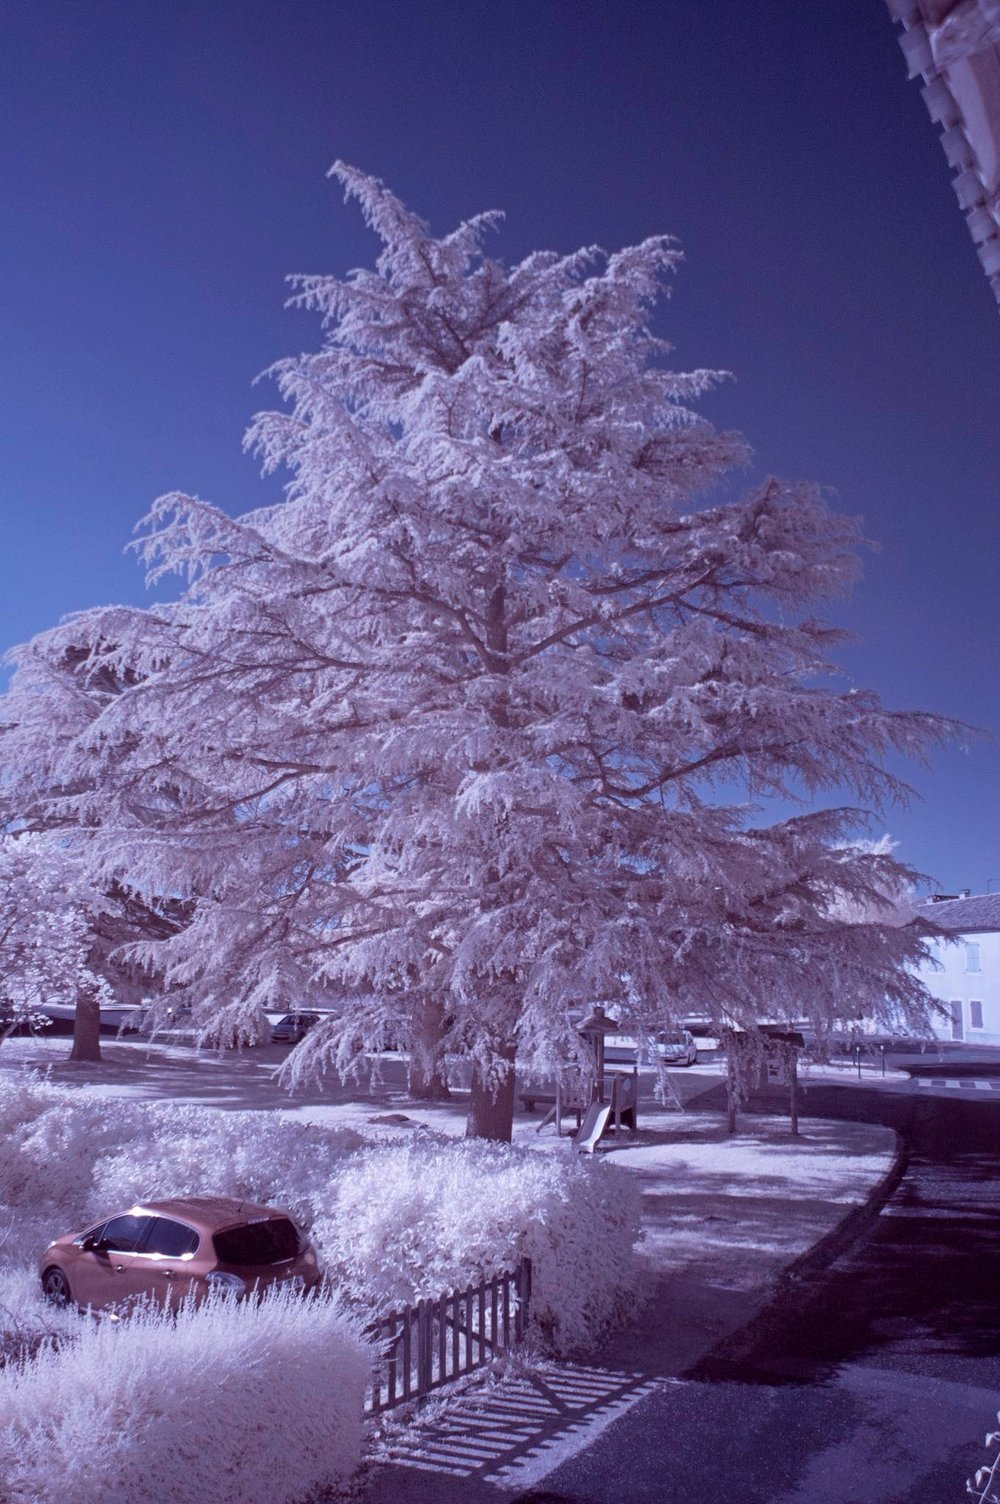 IR image corrected with channel swapping.